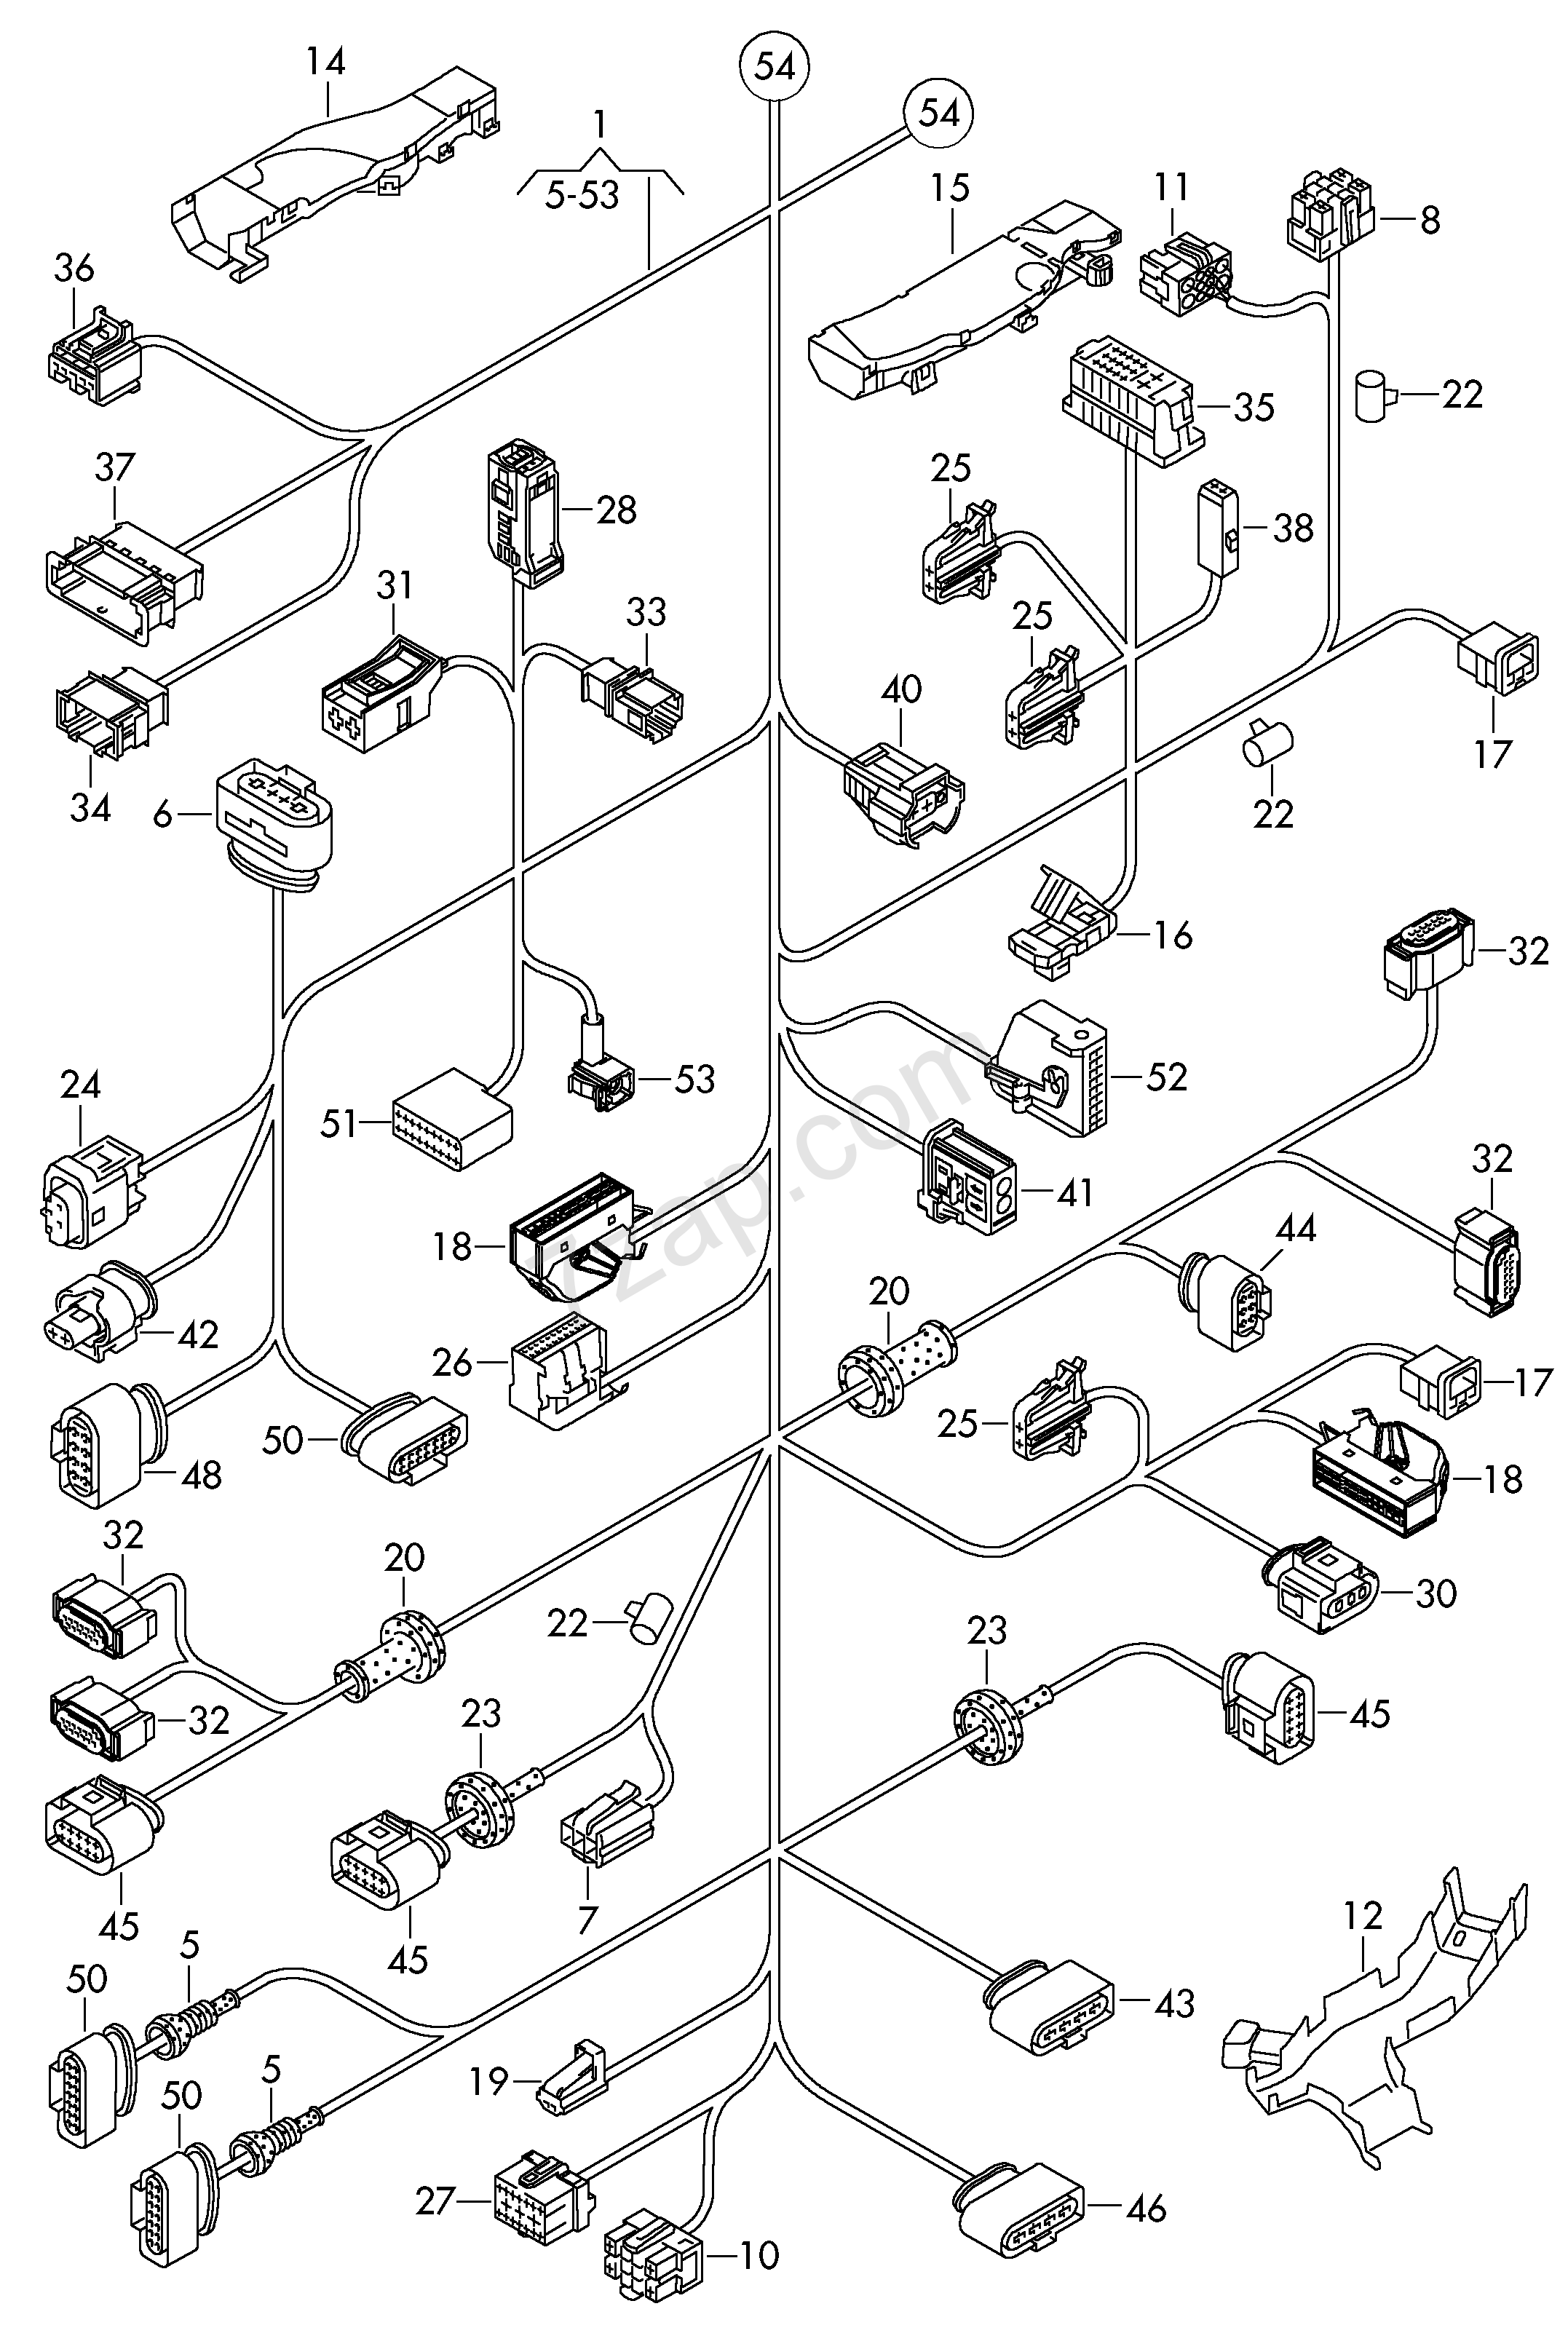 Wiring Diagram Database  2014 Vw Jetta Fuse Diagram